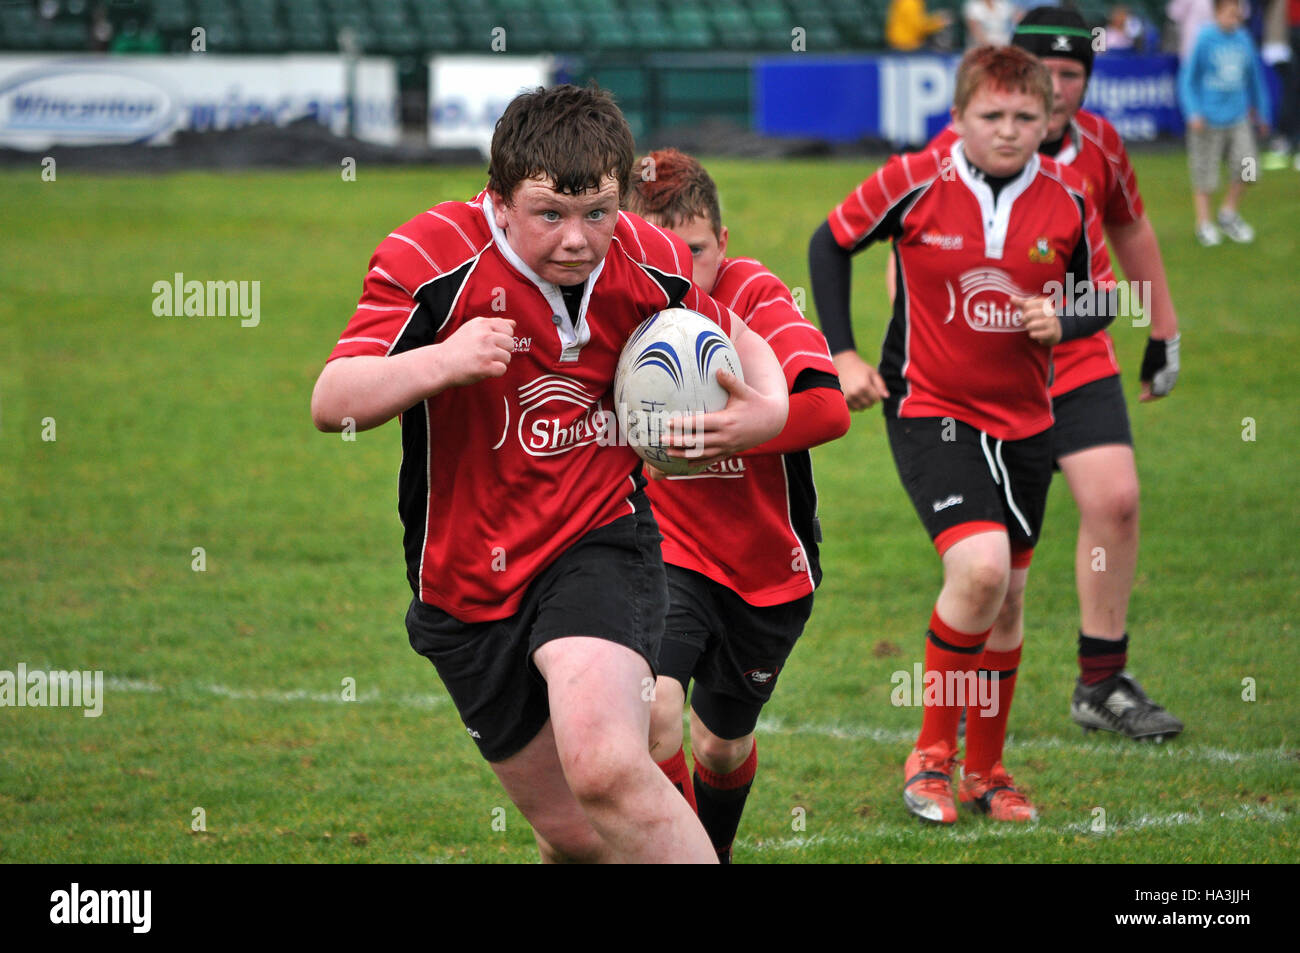 teenage boys playing rugby - Stock Image